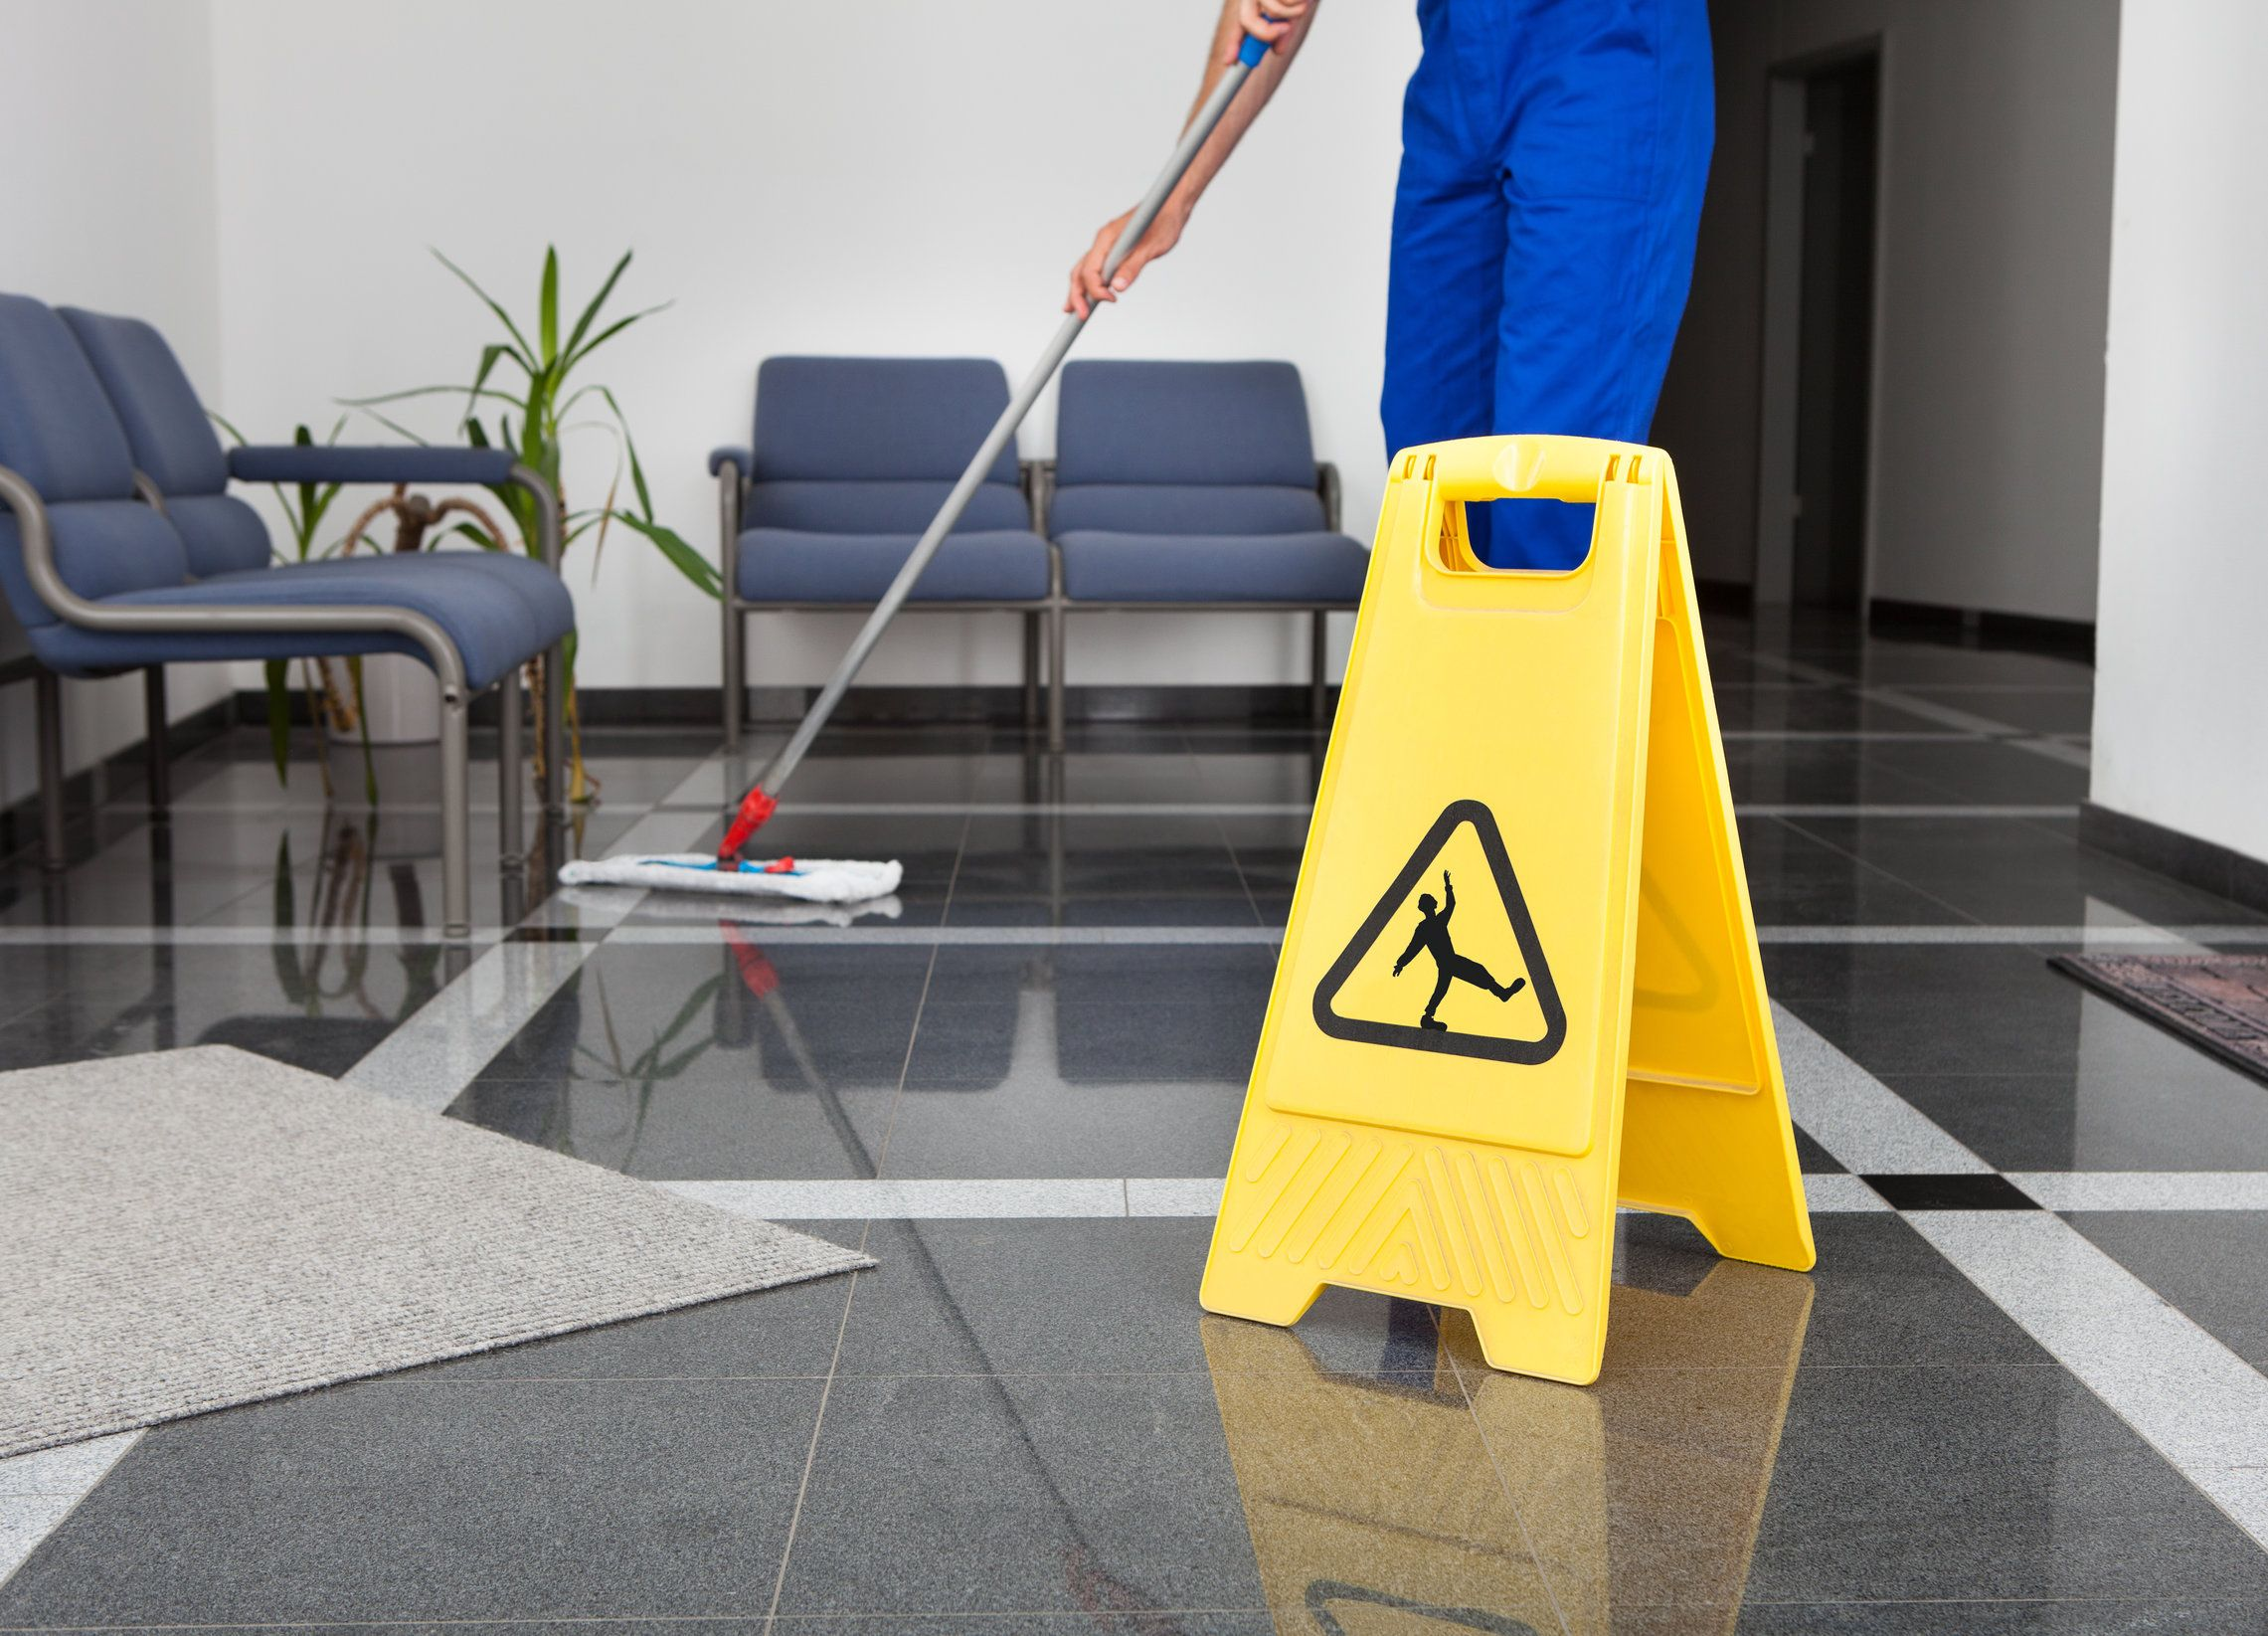 Professional Office Cleaning Company #cleaningservice #office